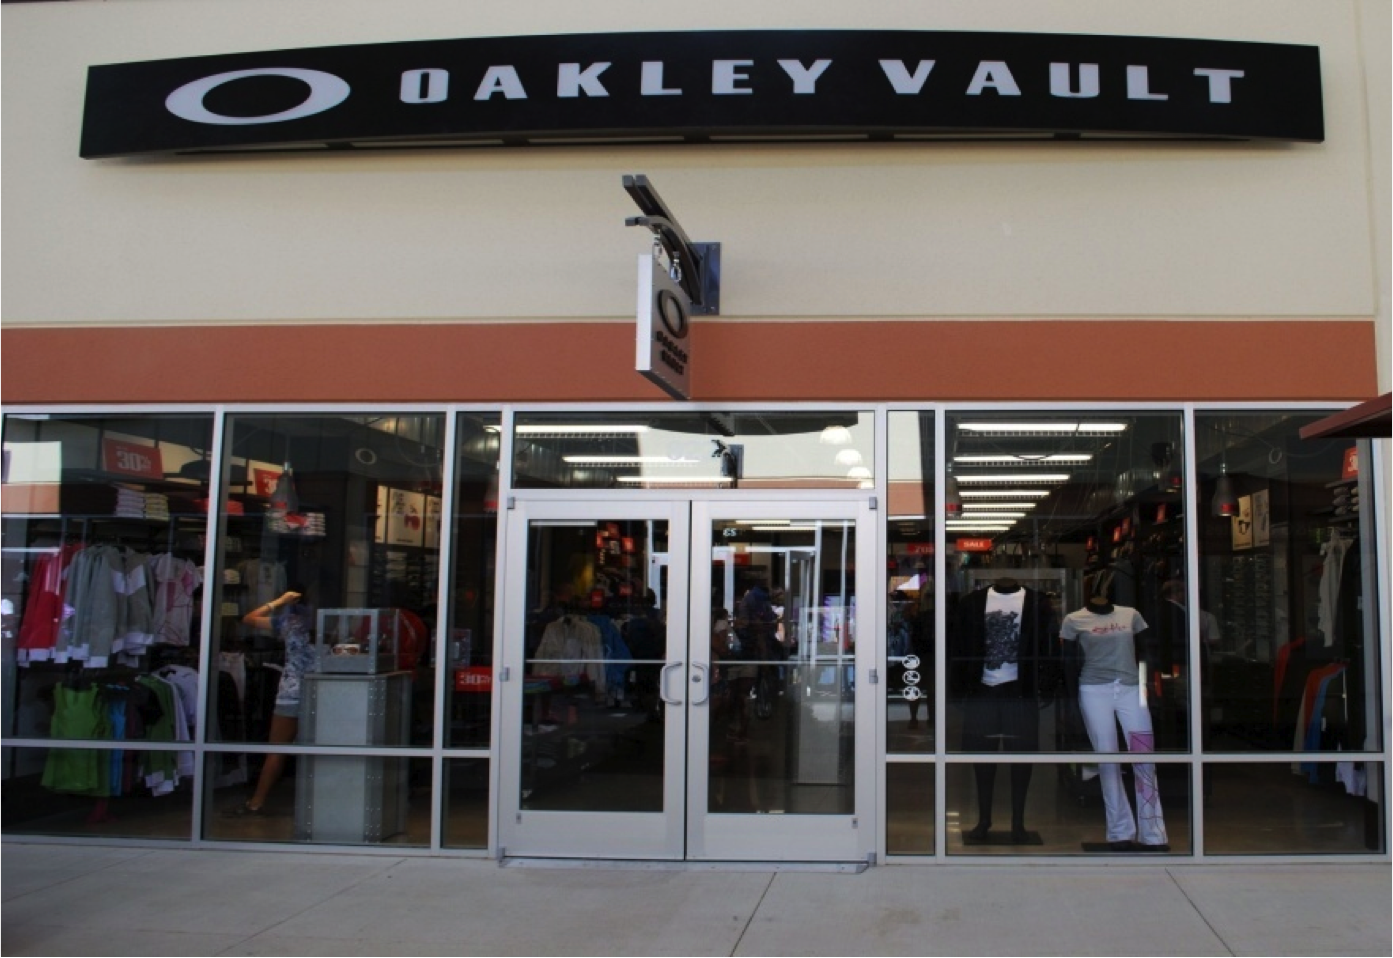 oakley sunglasses cincinnati  the official oakley outlet store: the oakley vault at cincinnati premium outlets. shop oakley sunglasses, goggles, apparel, and more up to 50% off at oakley